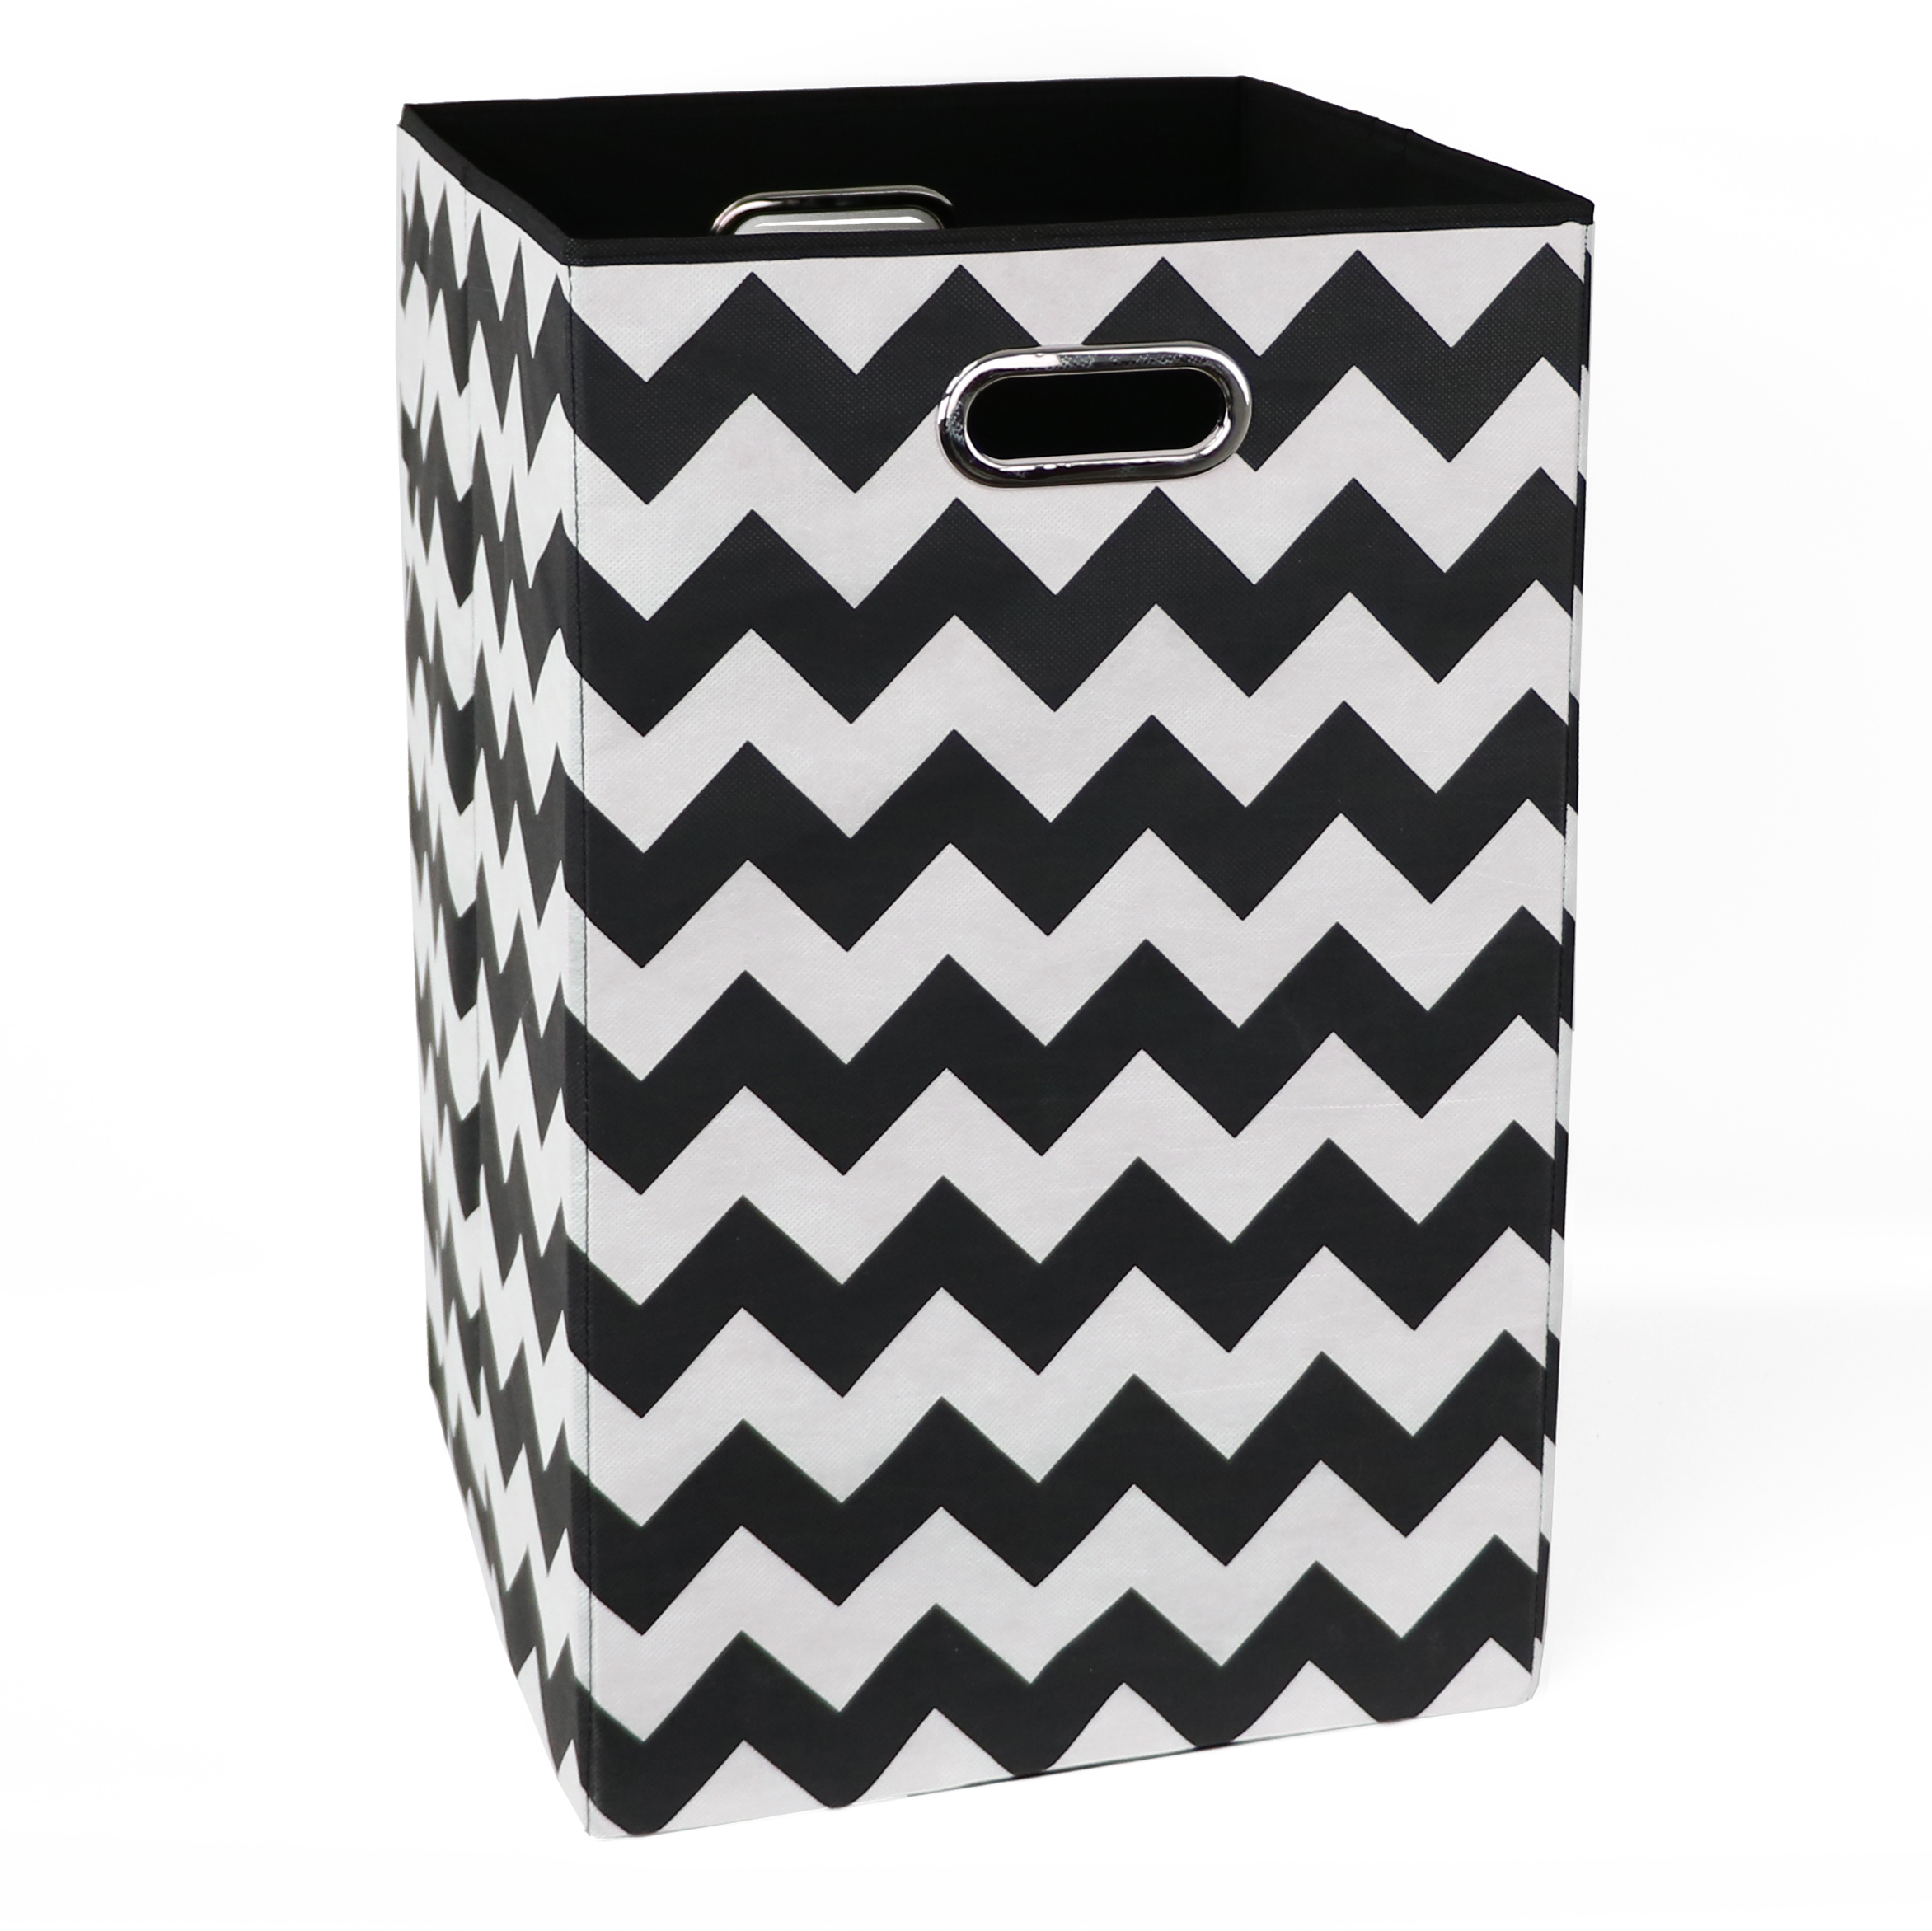 Modern Littles Black Chevron Folding Laundry Bin